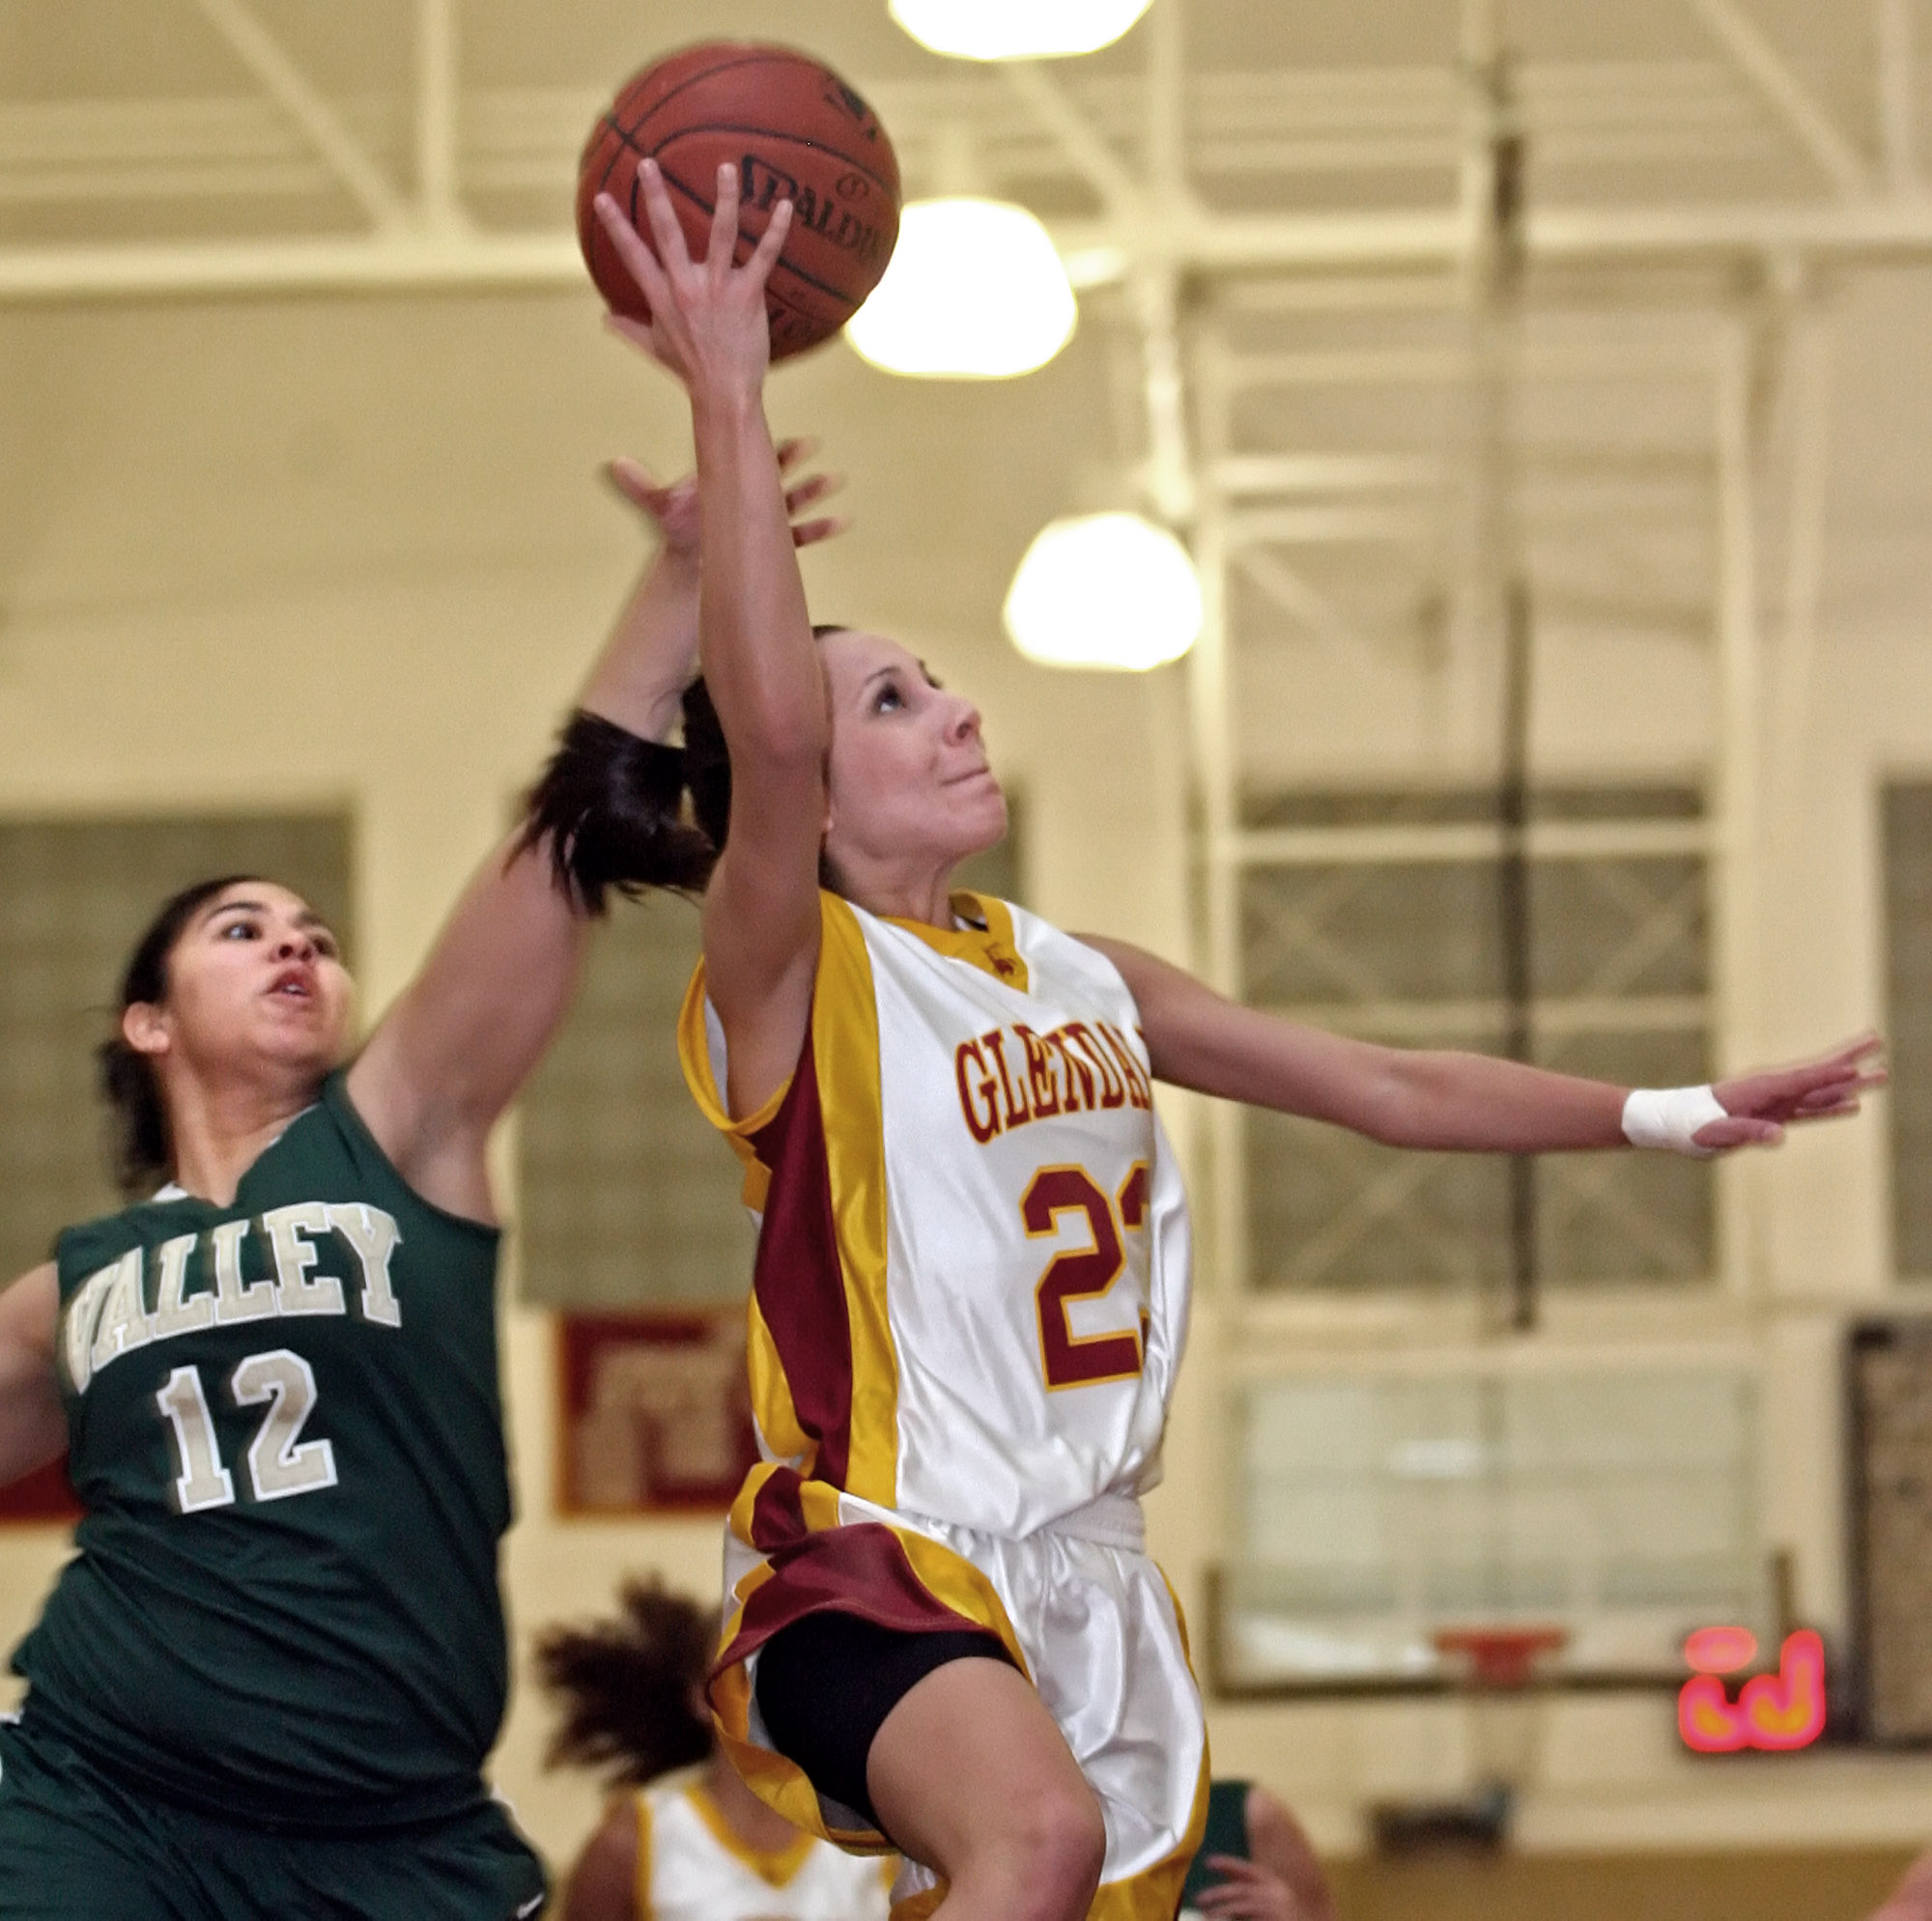 Glendale College women's basketball player #23 Susana Rascon gets fouled by L.A. Valley College player #12 Alejandra Gallardo as she takes it to the basket during first half action at the Vaqueros home in Glendale on Saturday, January 30, 2010.  (Raul Roa/News-Press)